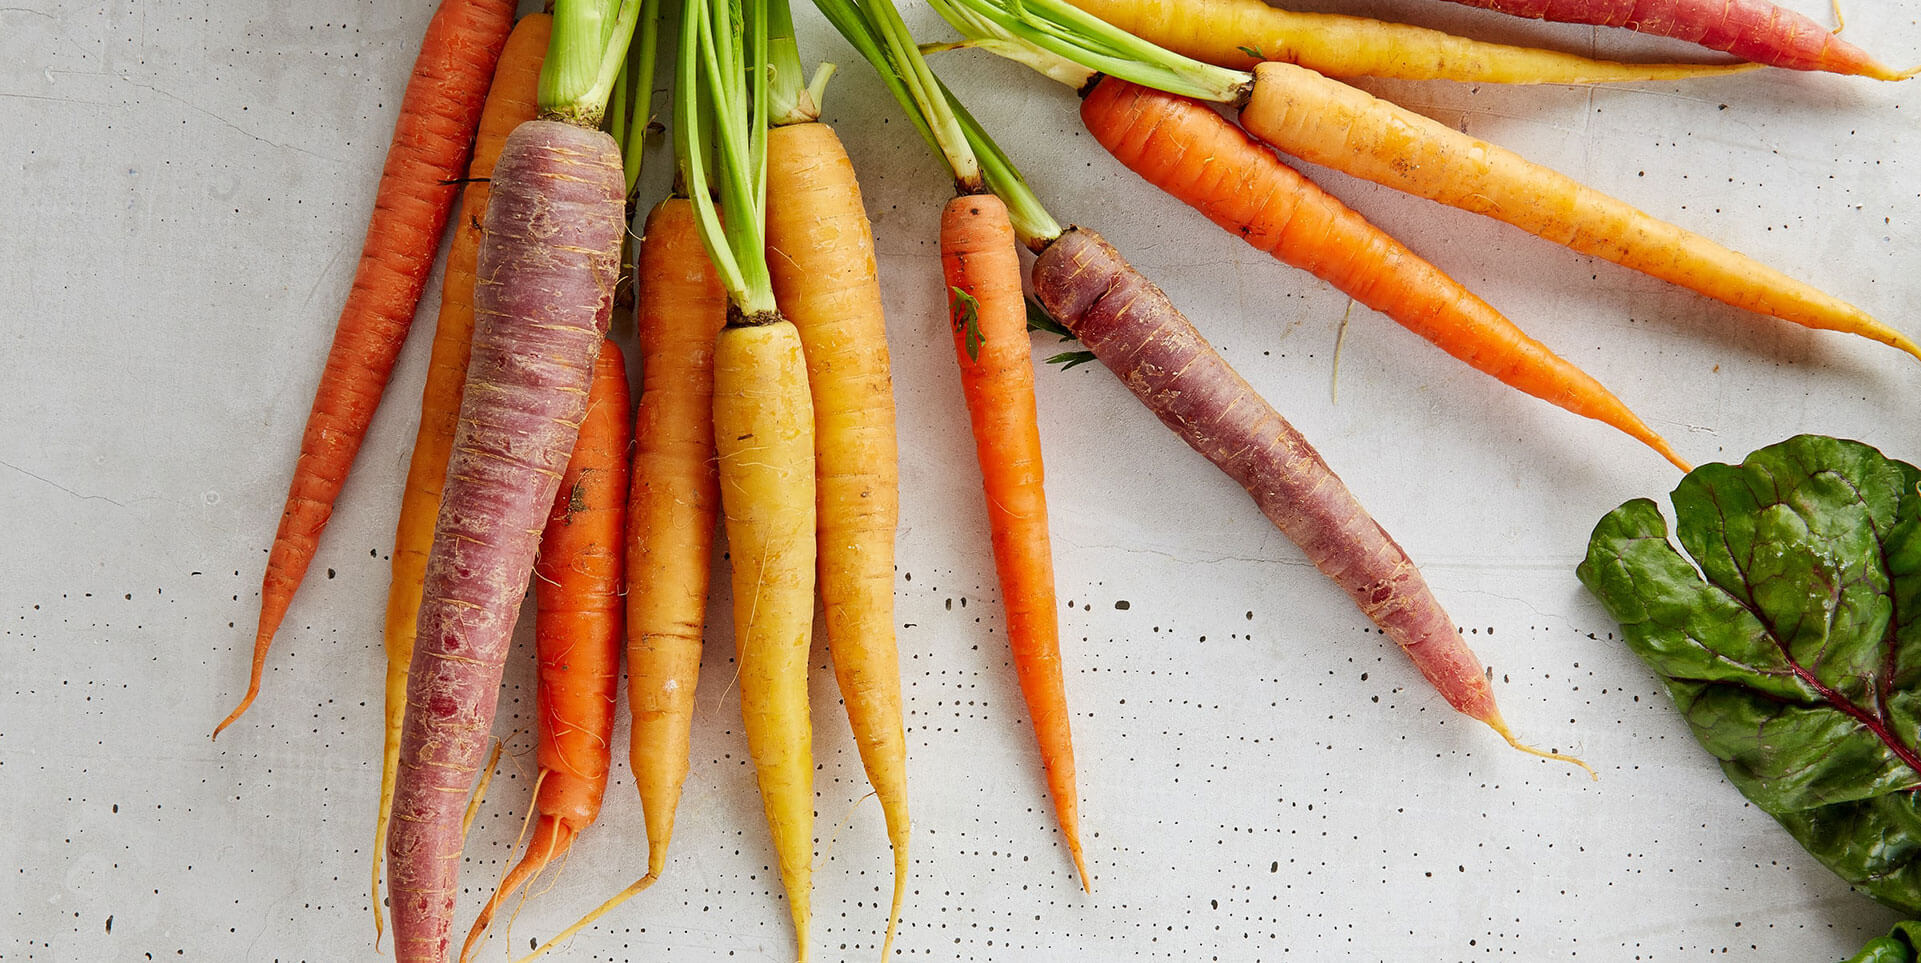 Bunch of carrots on a white, wood surface